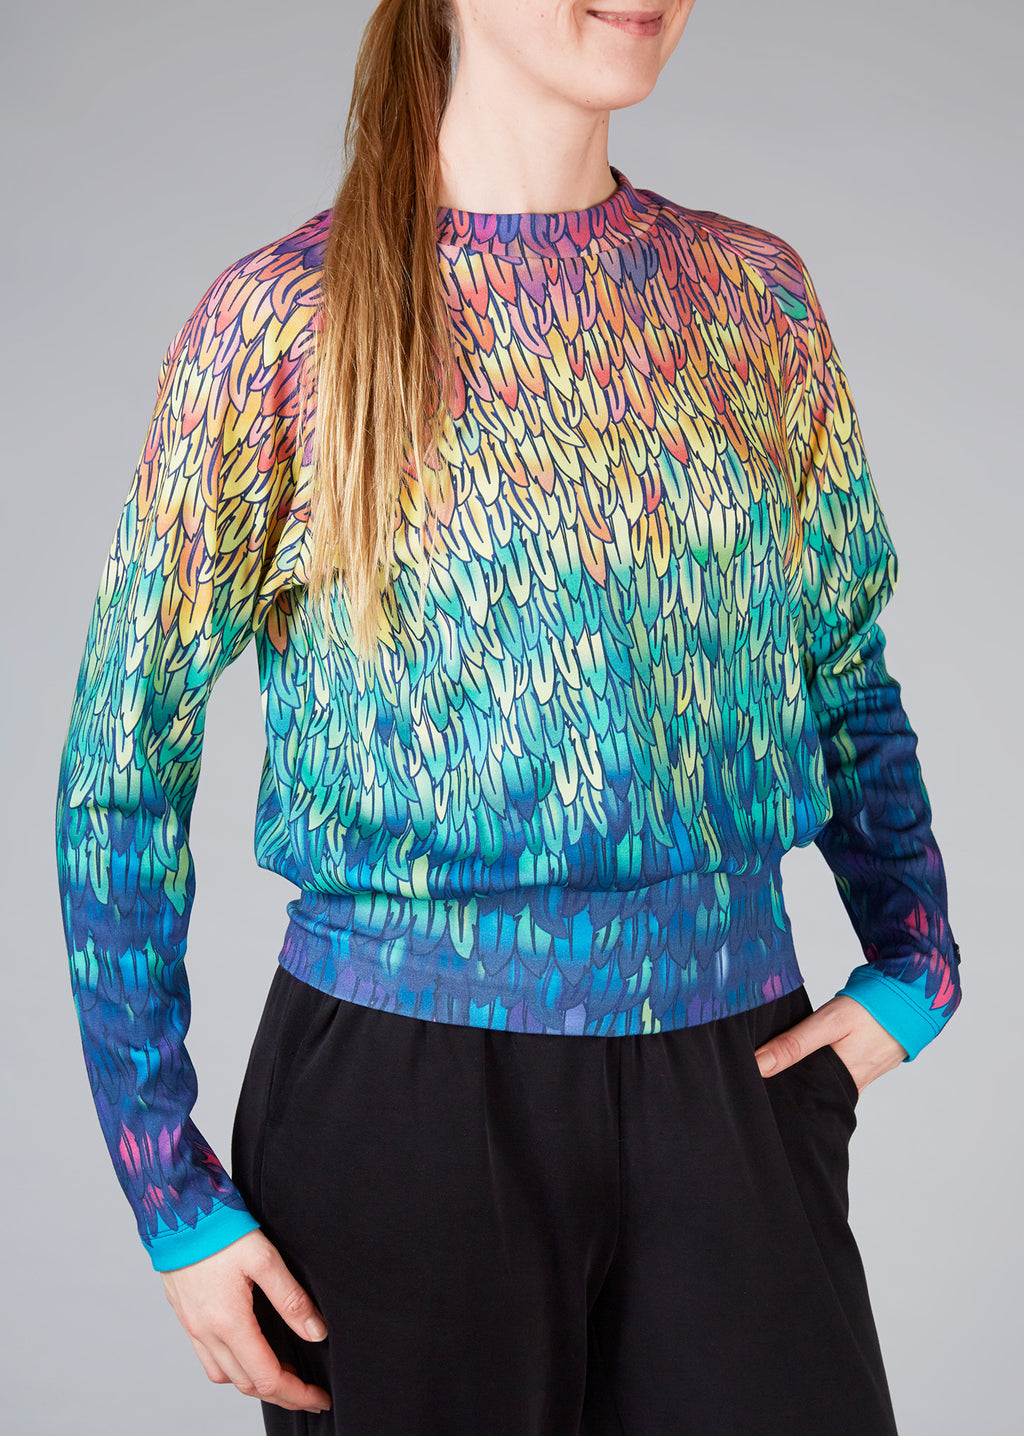 DANCING Long Sleeve